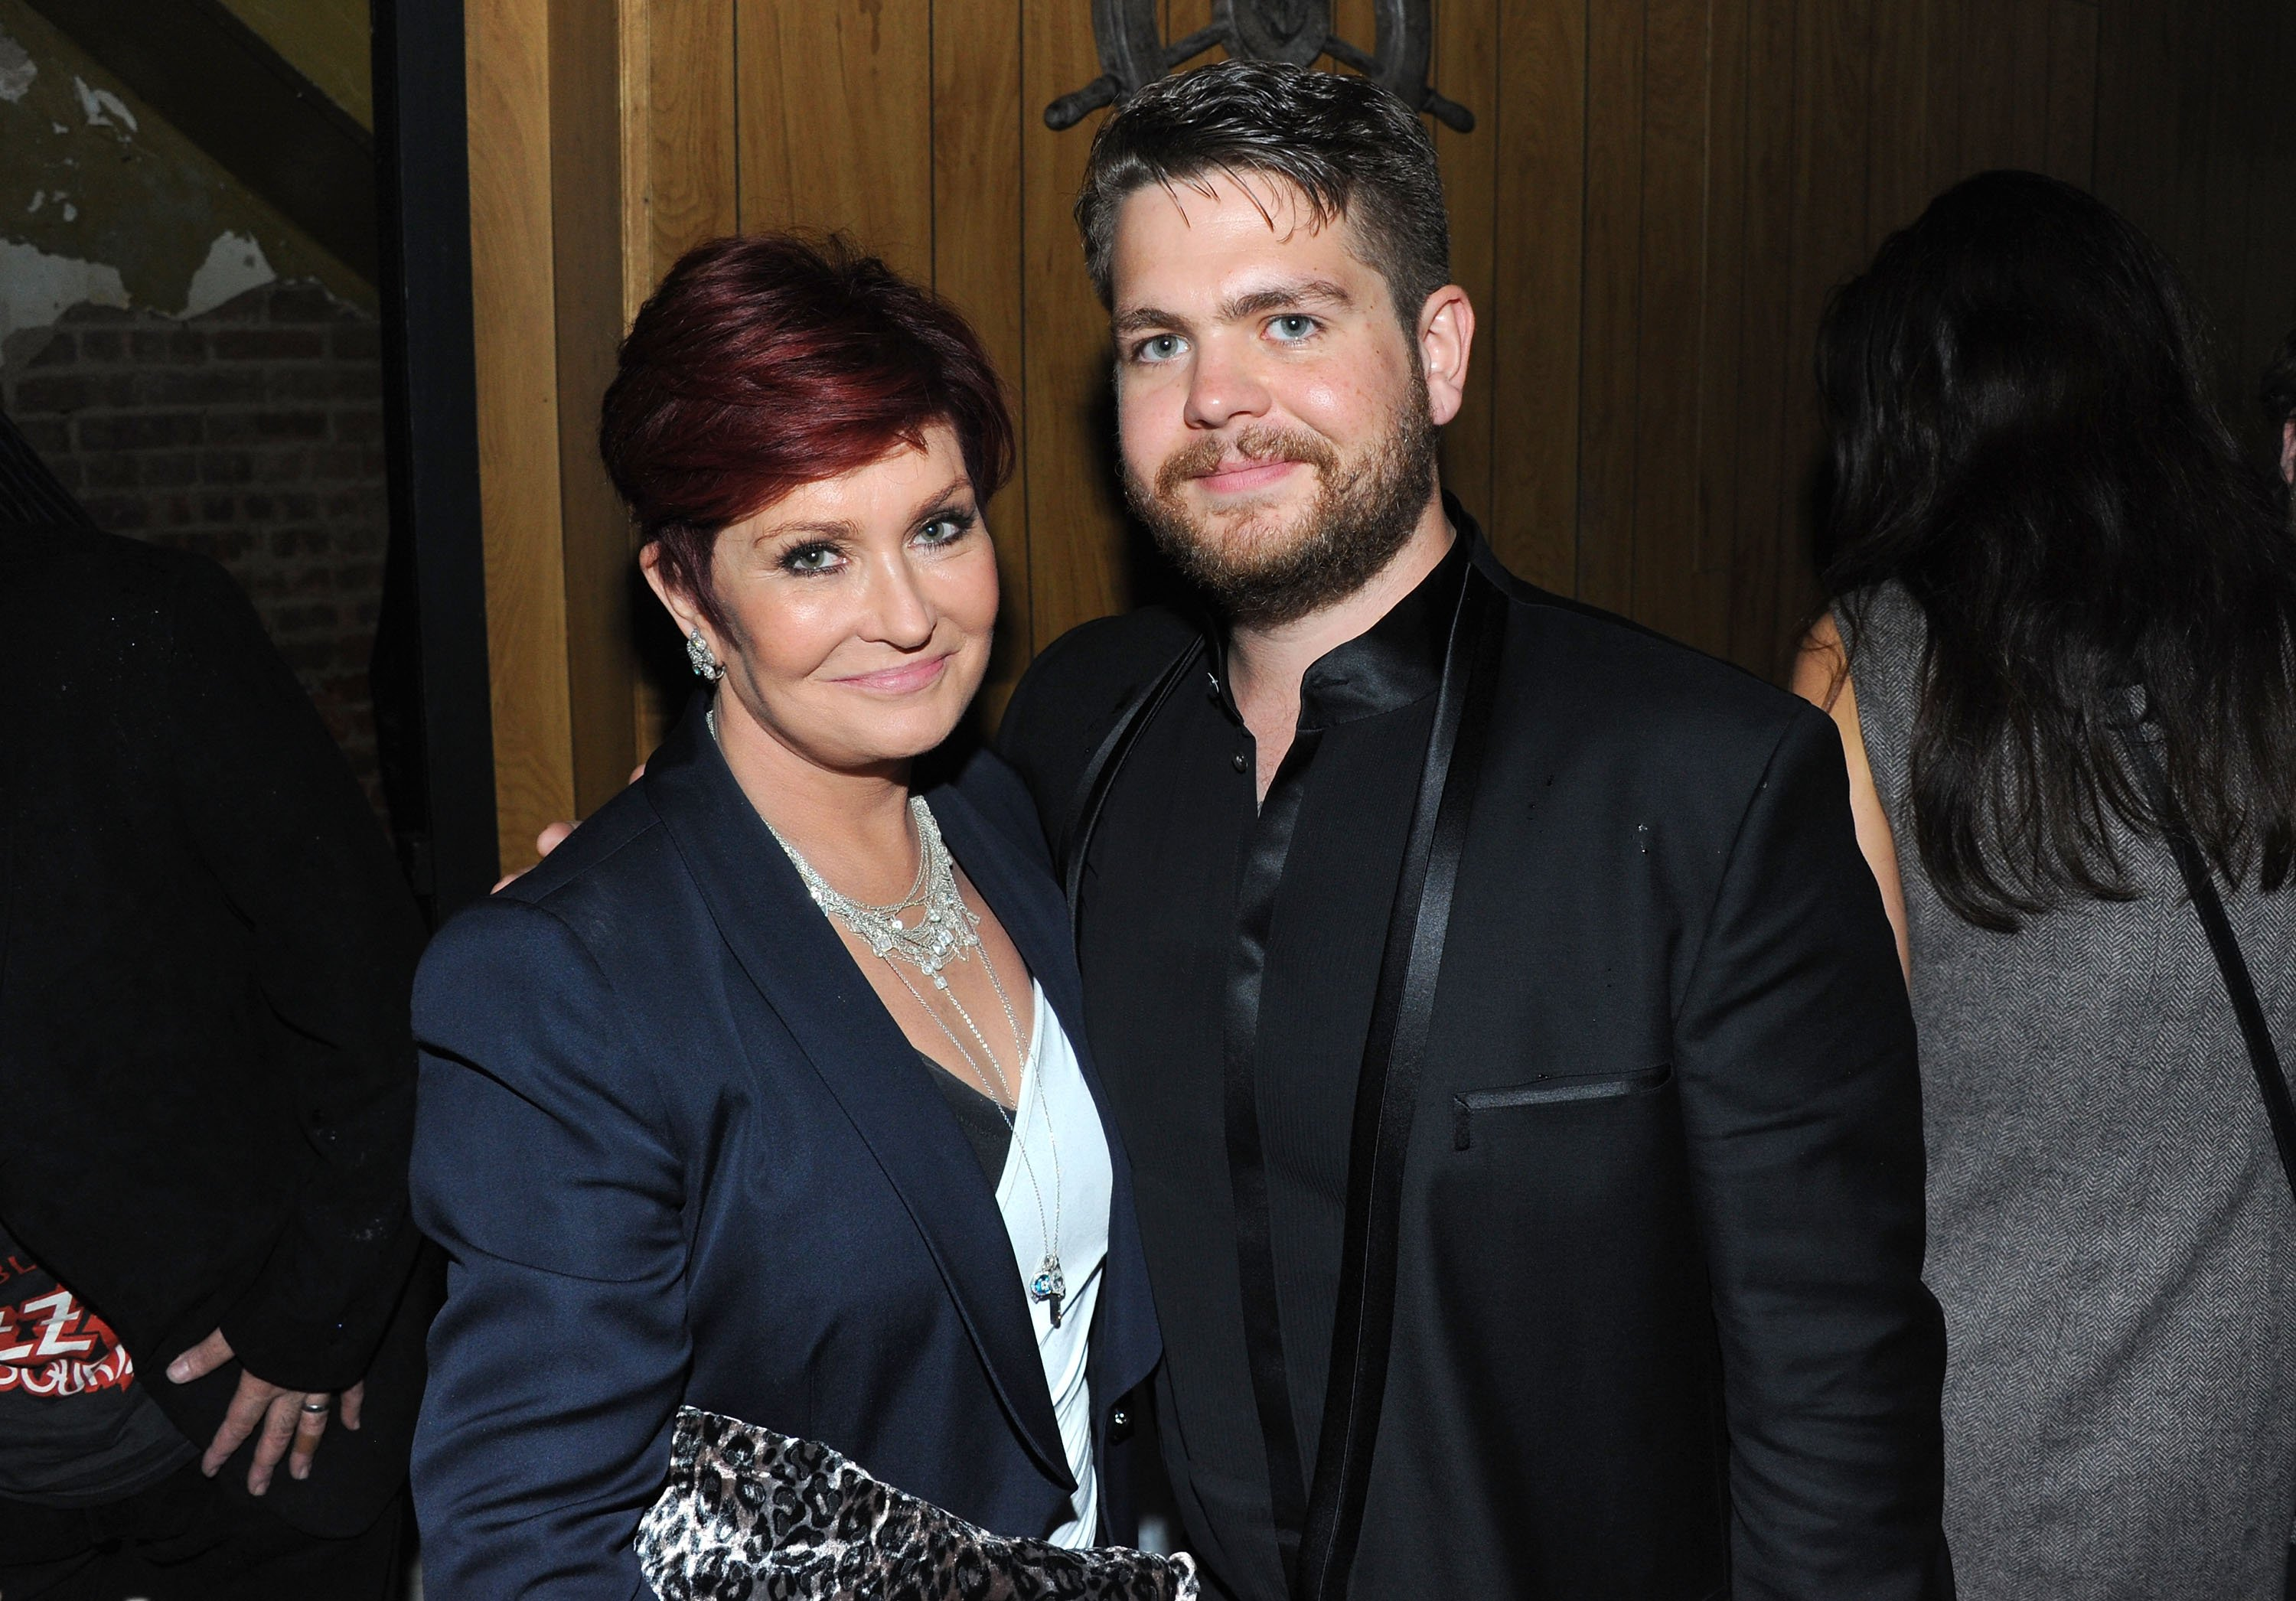 Sharon and Jack Osbourne at God Bless Ozzy Osbourne's premiere after-party at the Tribeca Film Festival, presented by American Express at Anchor Bar on April 24, 2011 in New York City | Photo: Getty Images